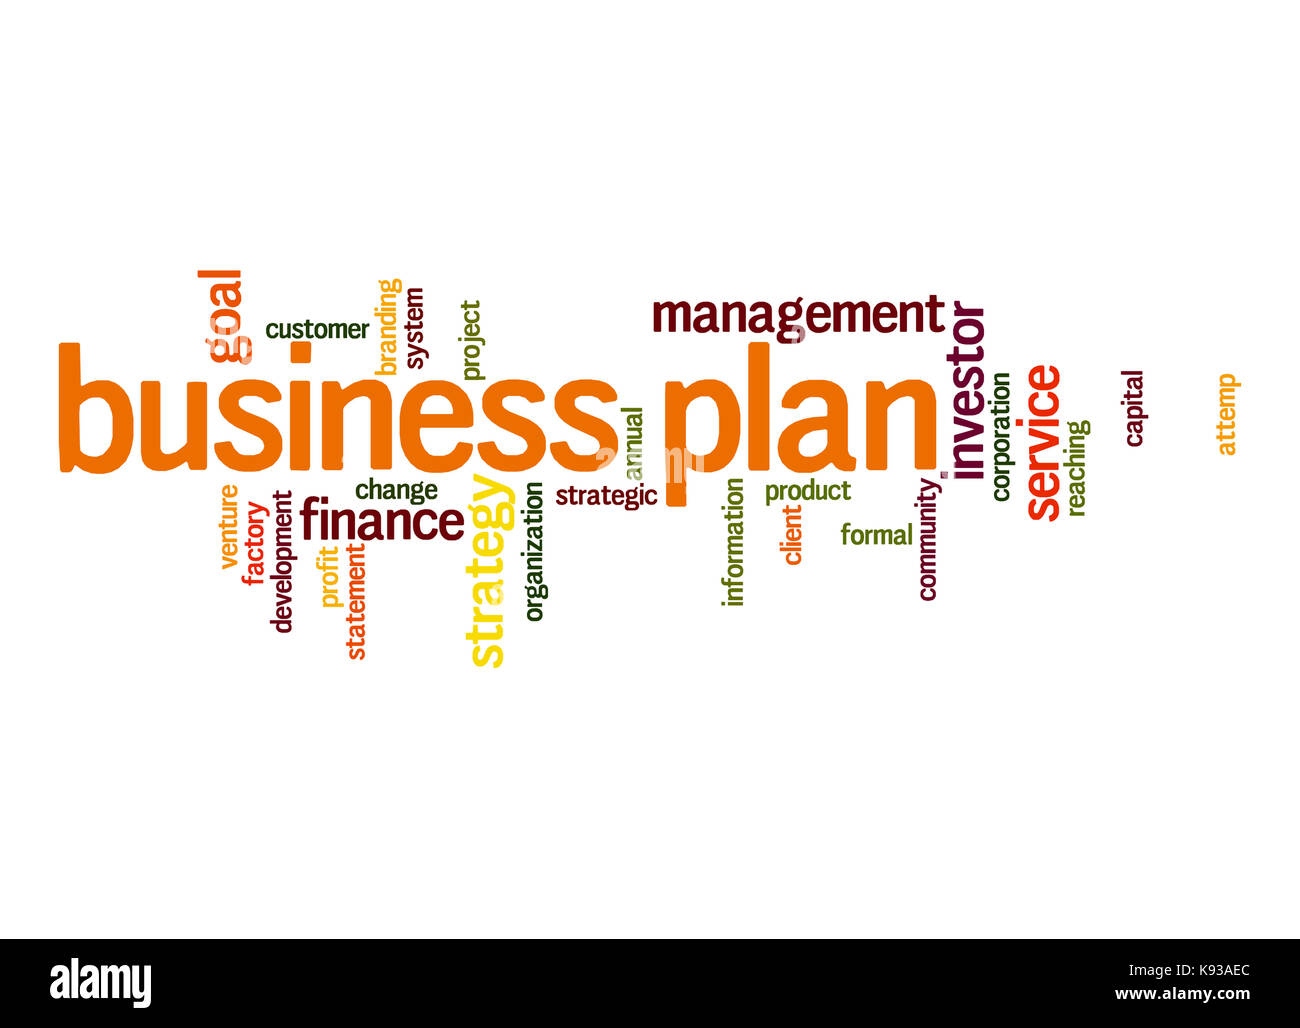 Information about Business Continuity and Disaster Recovery Plans